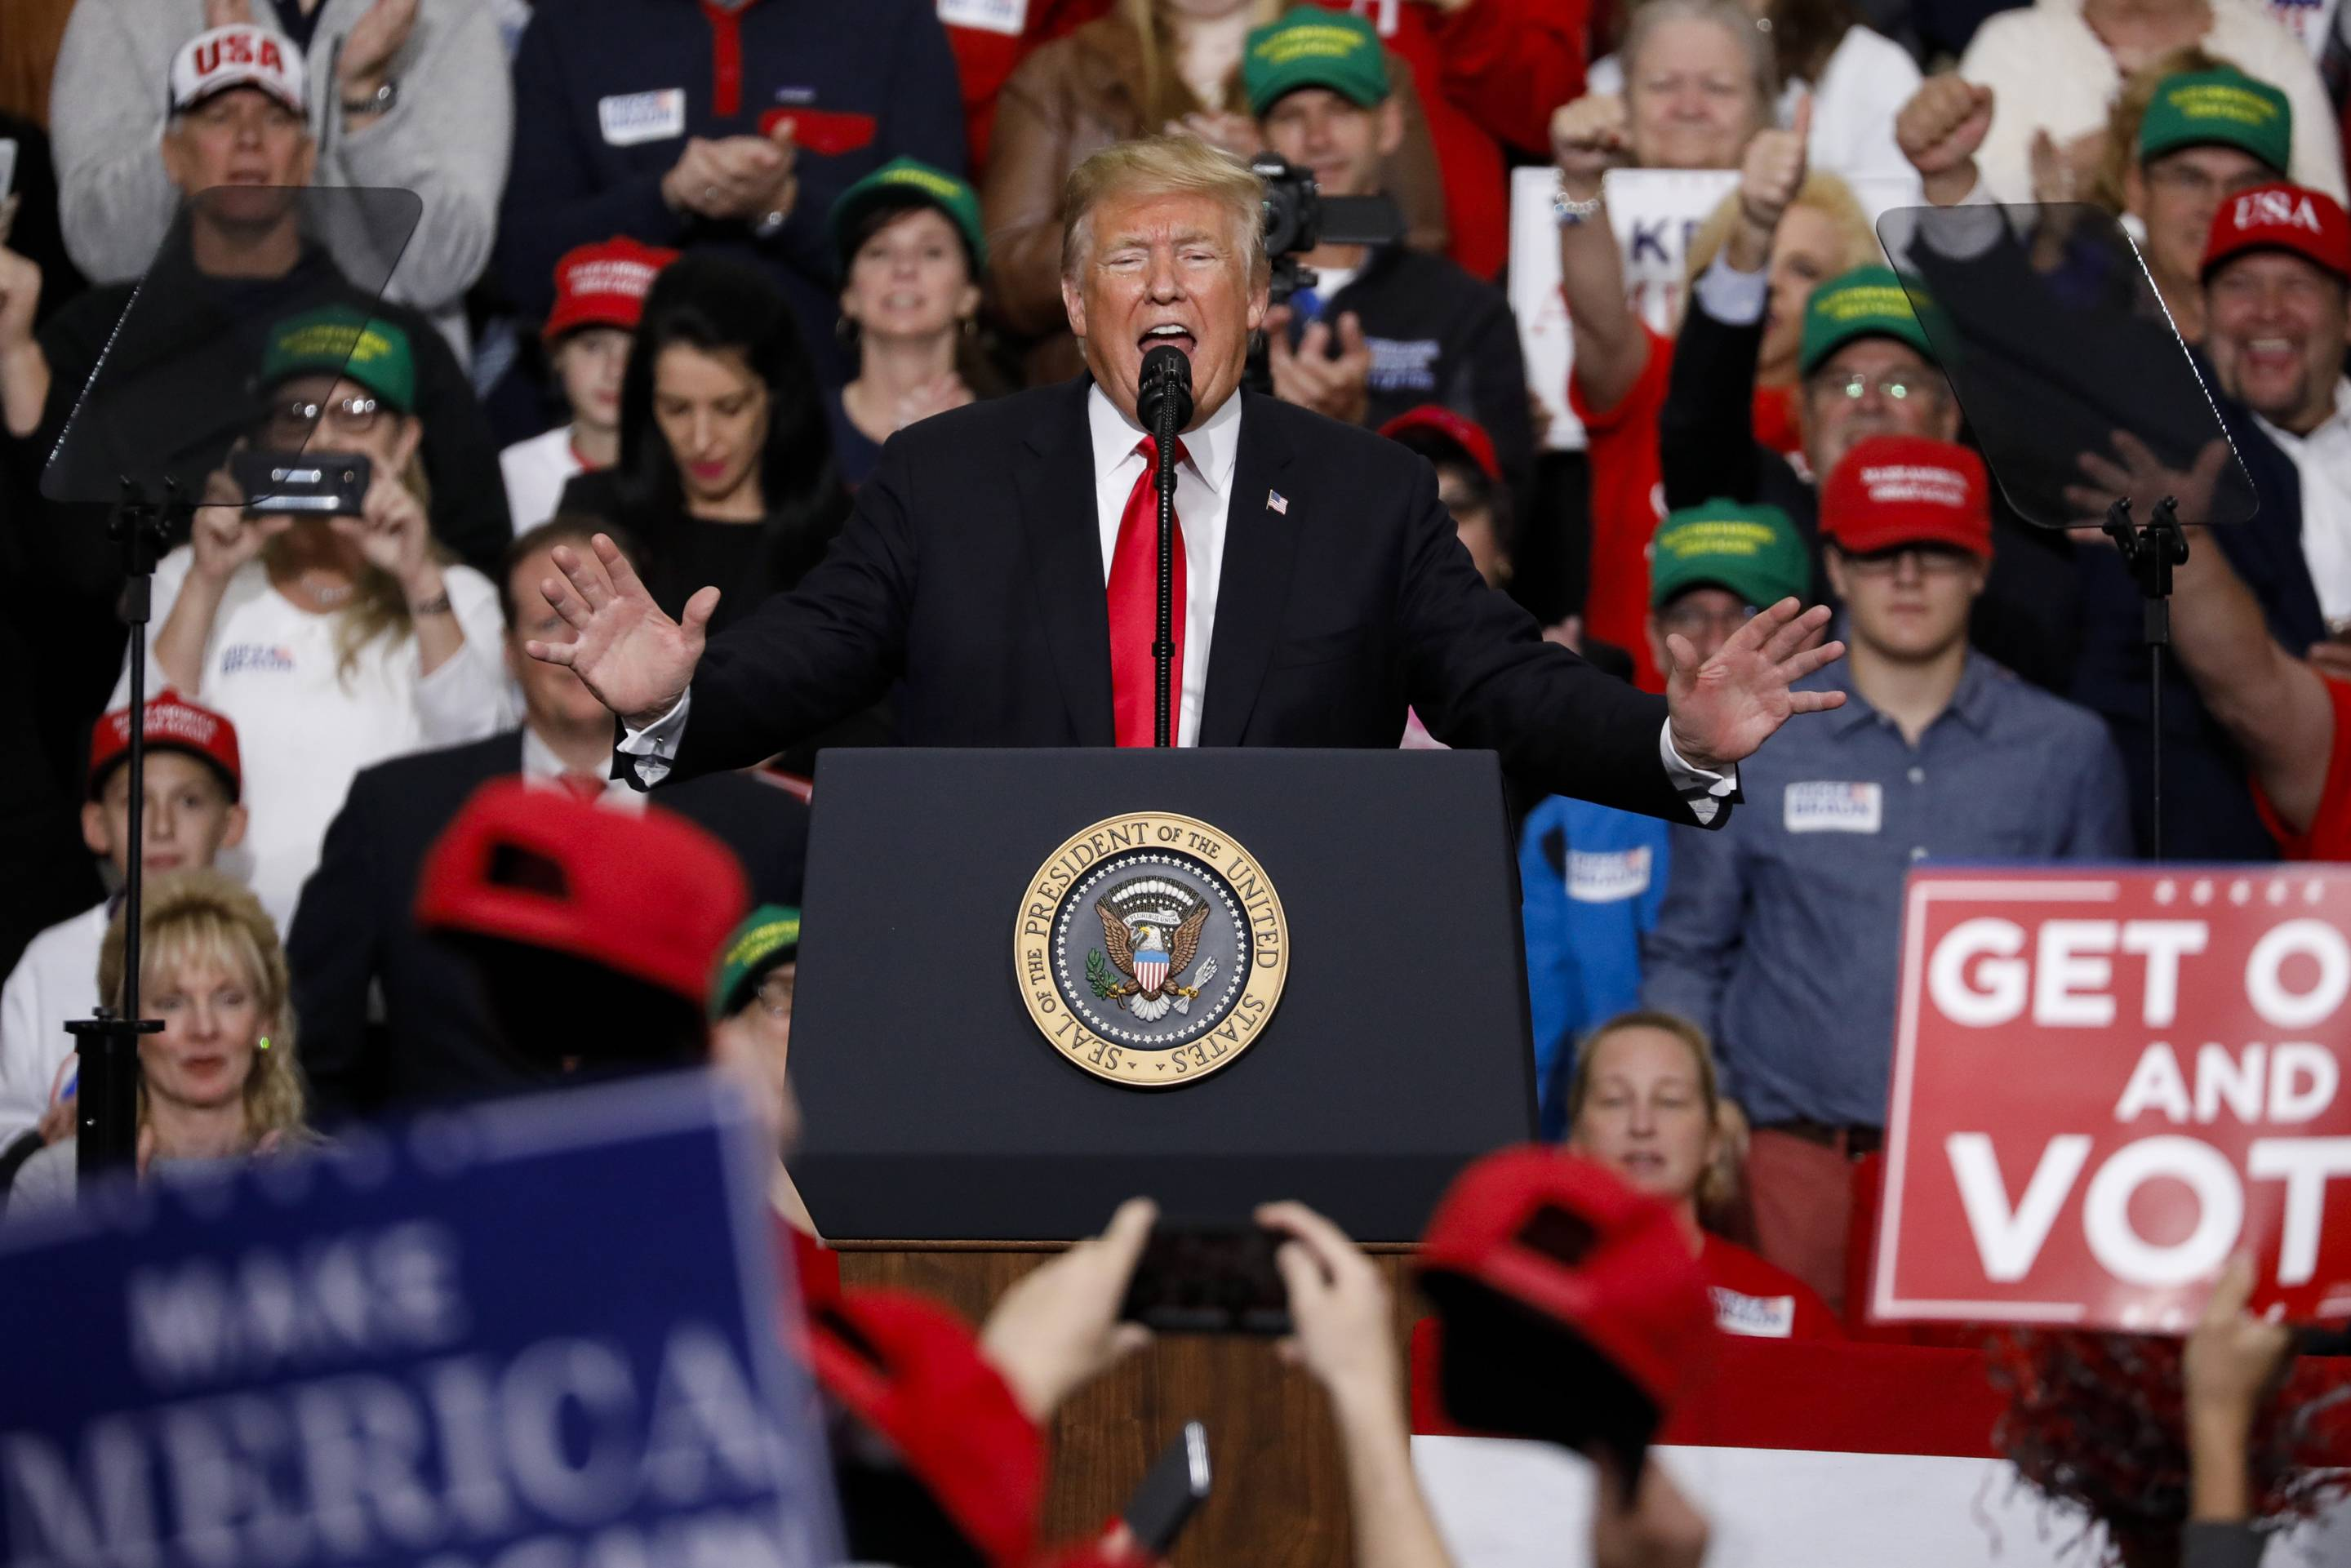 President Trump Holds Rally In Indianapolis Ahead Of The Midterm Elections